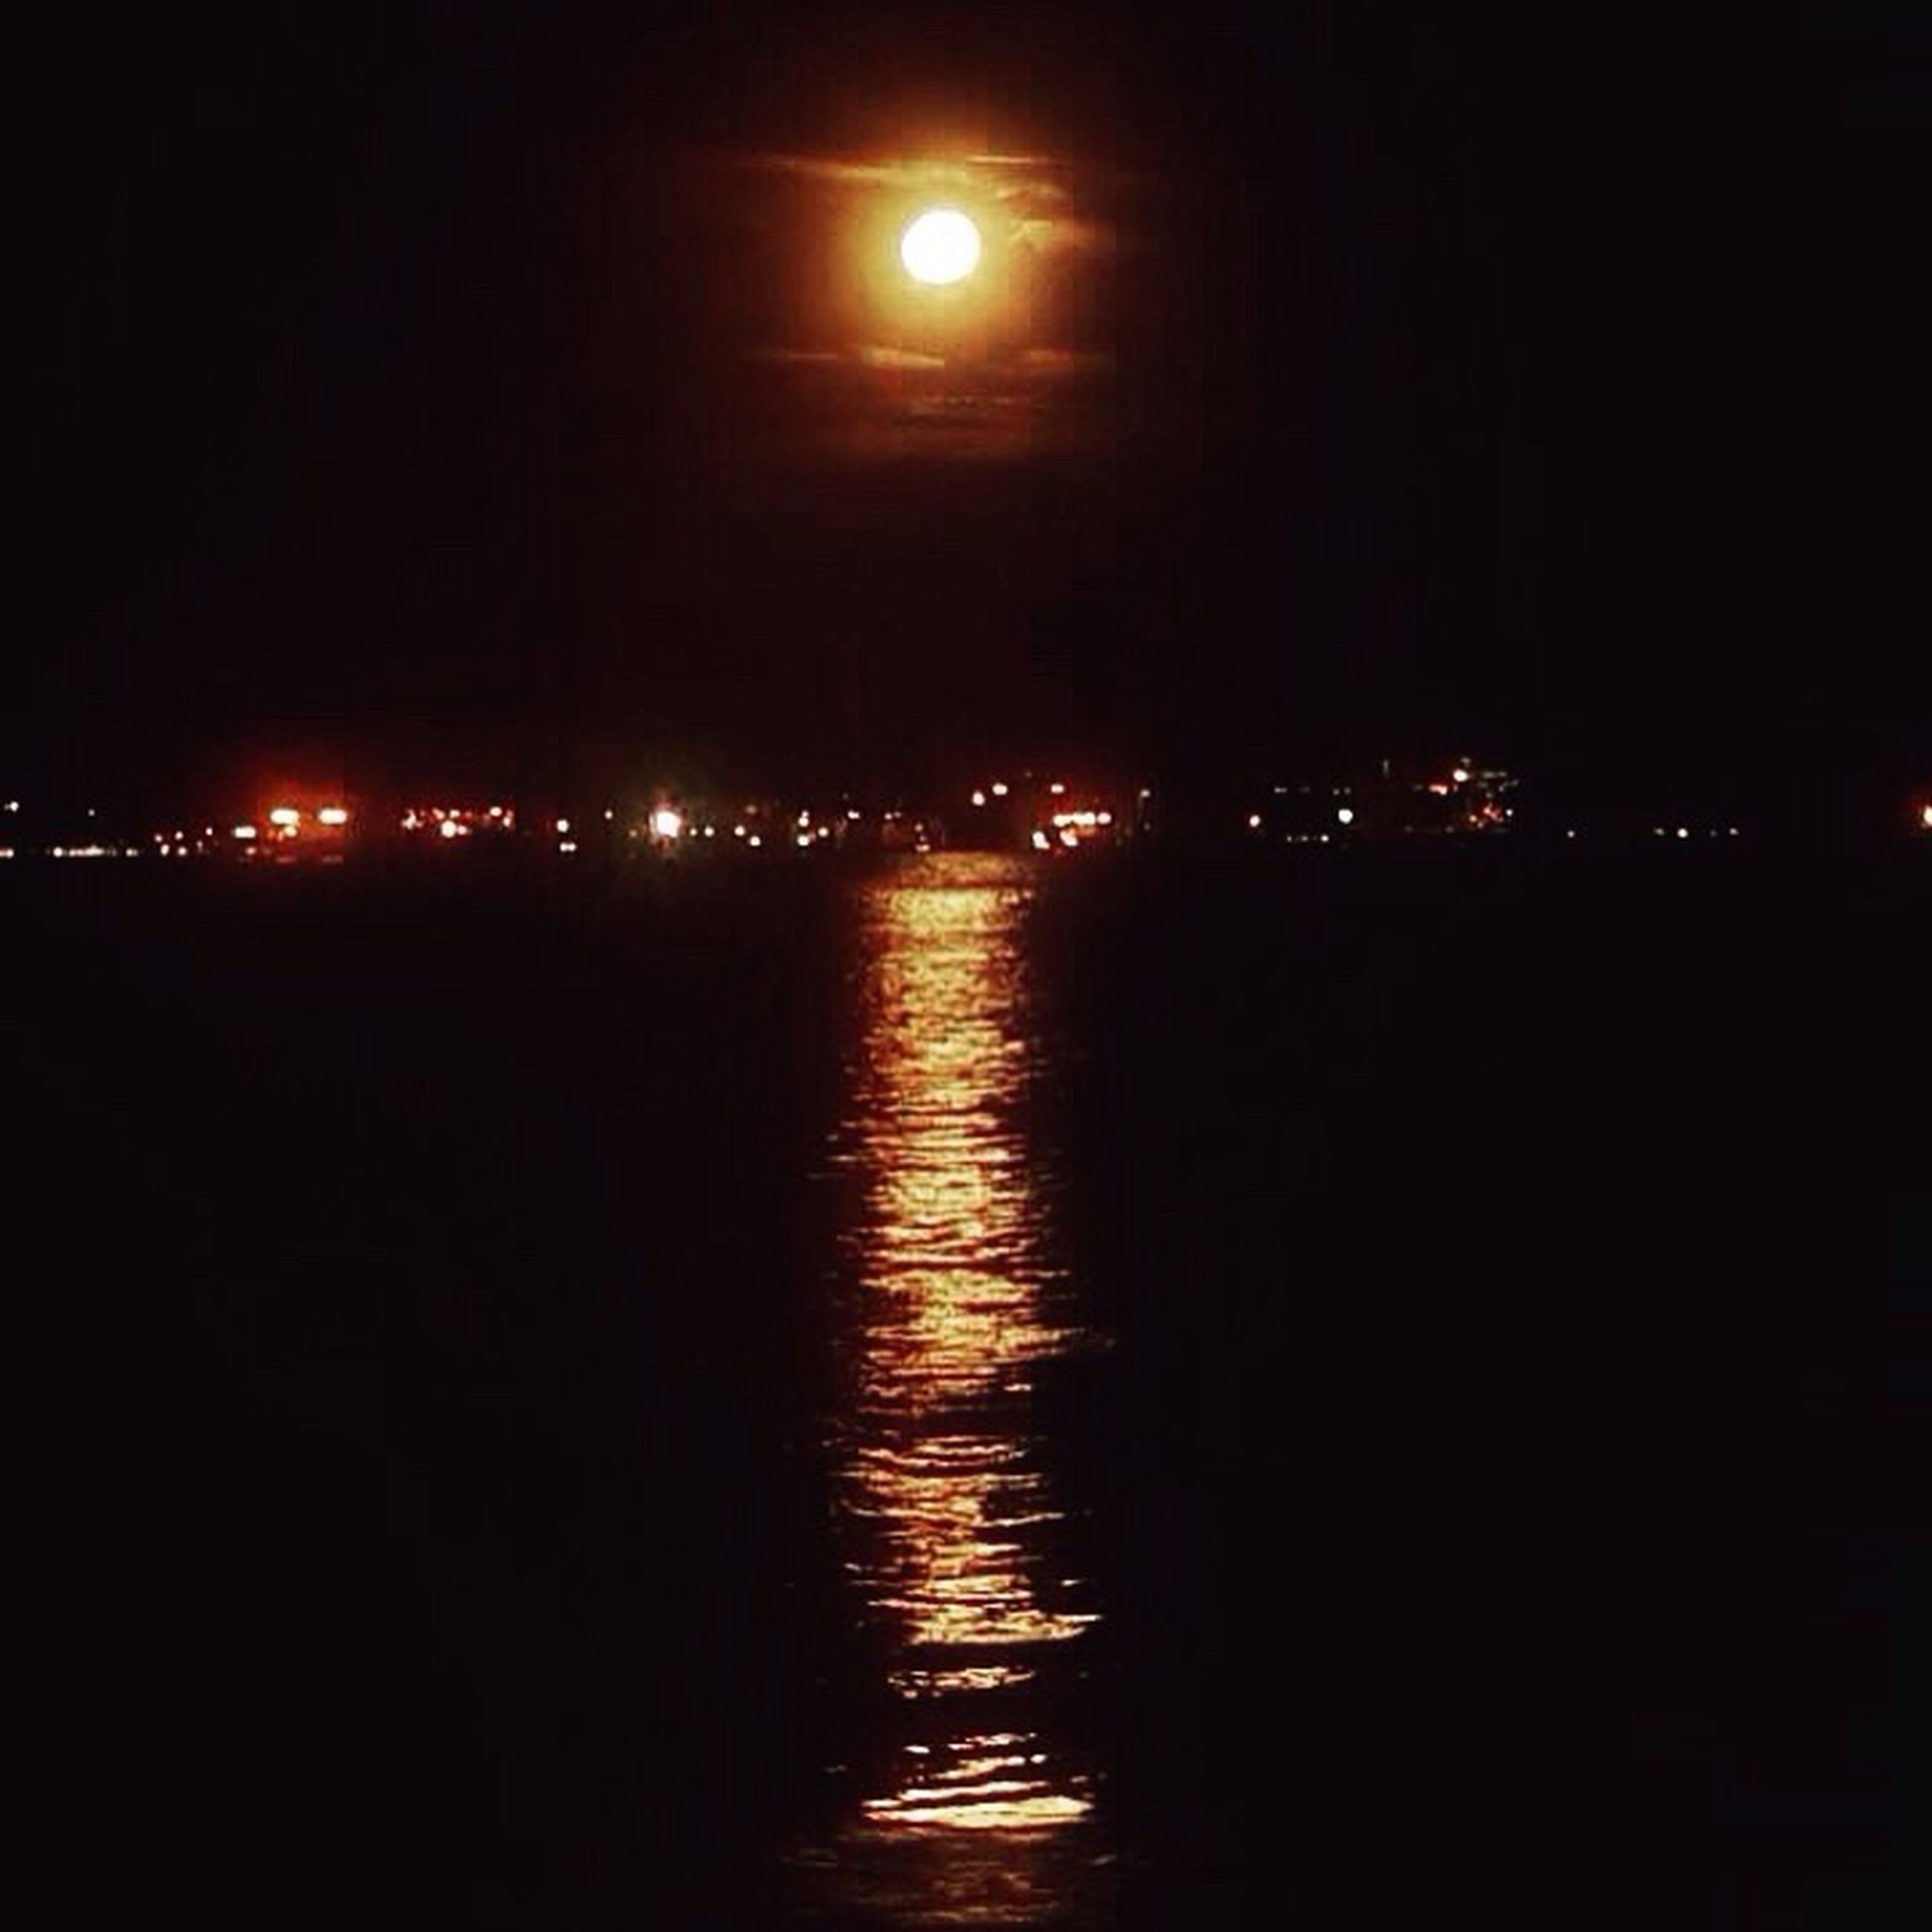 night, reflection, water, sky, moon, illuminated, no people, nature, sea, scenics, beauty in nature, city, outdoors